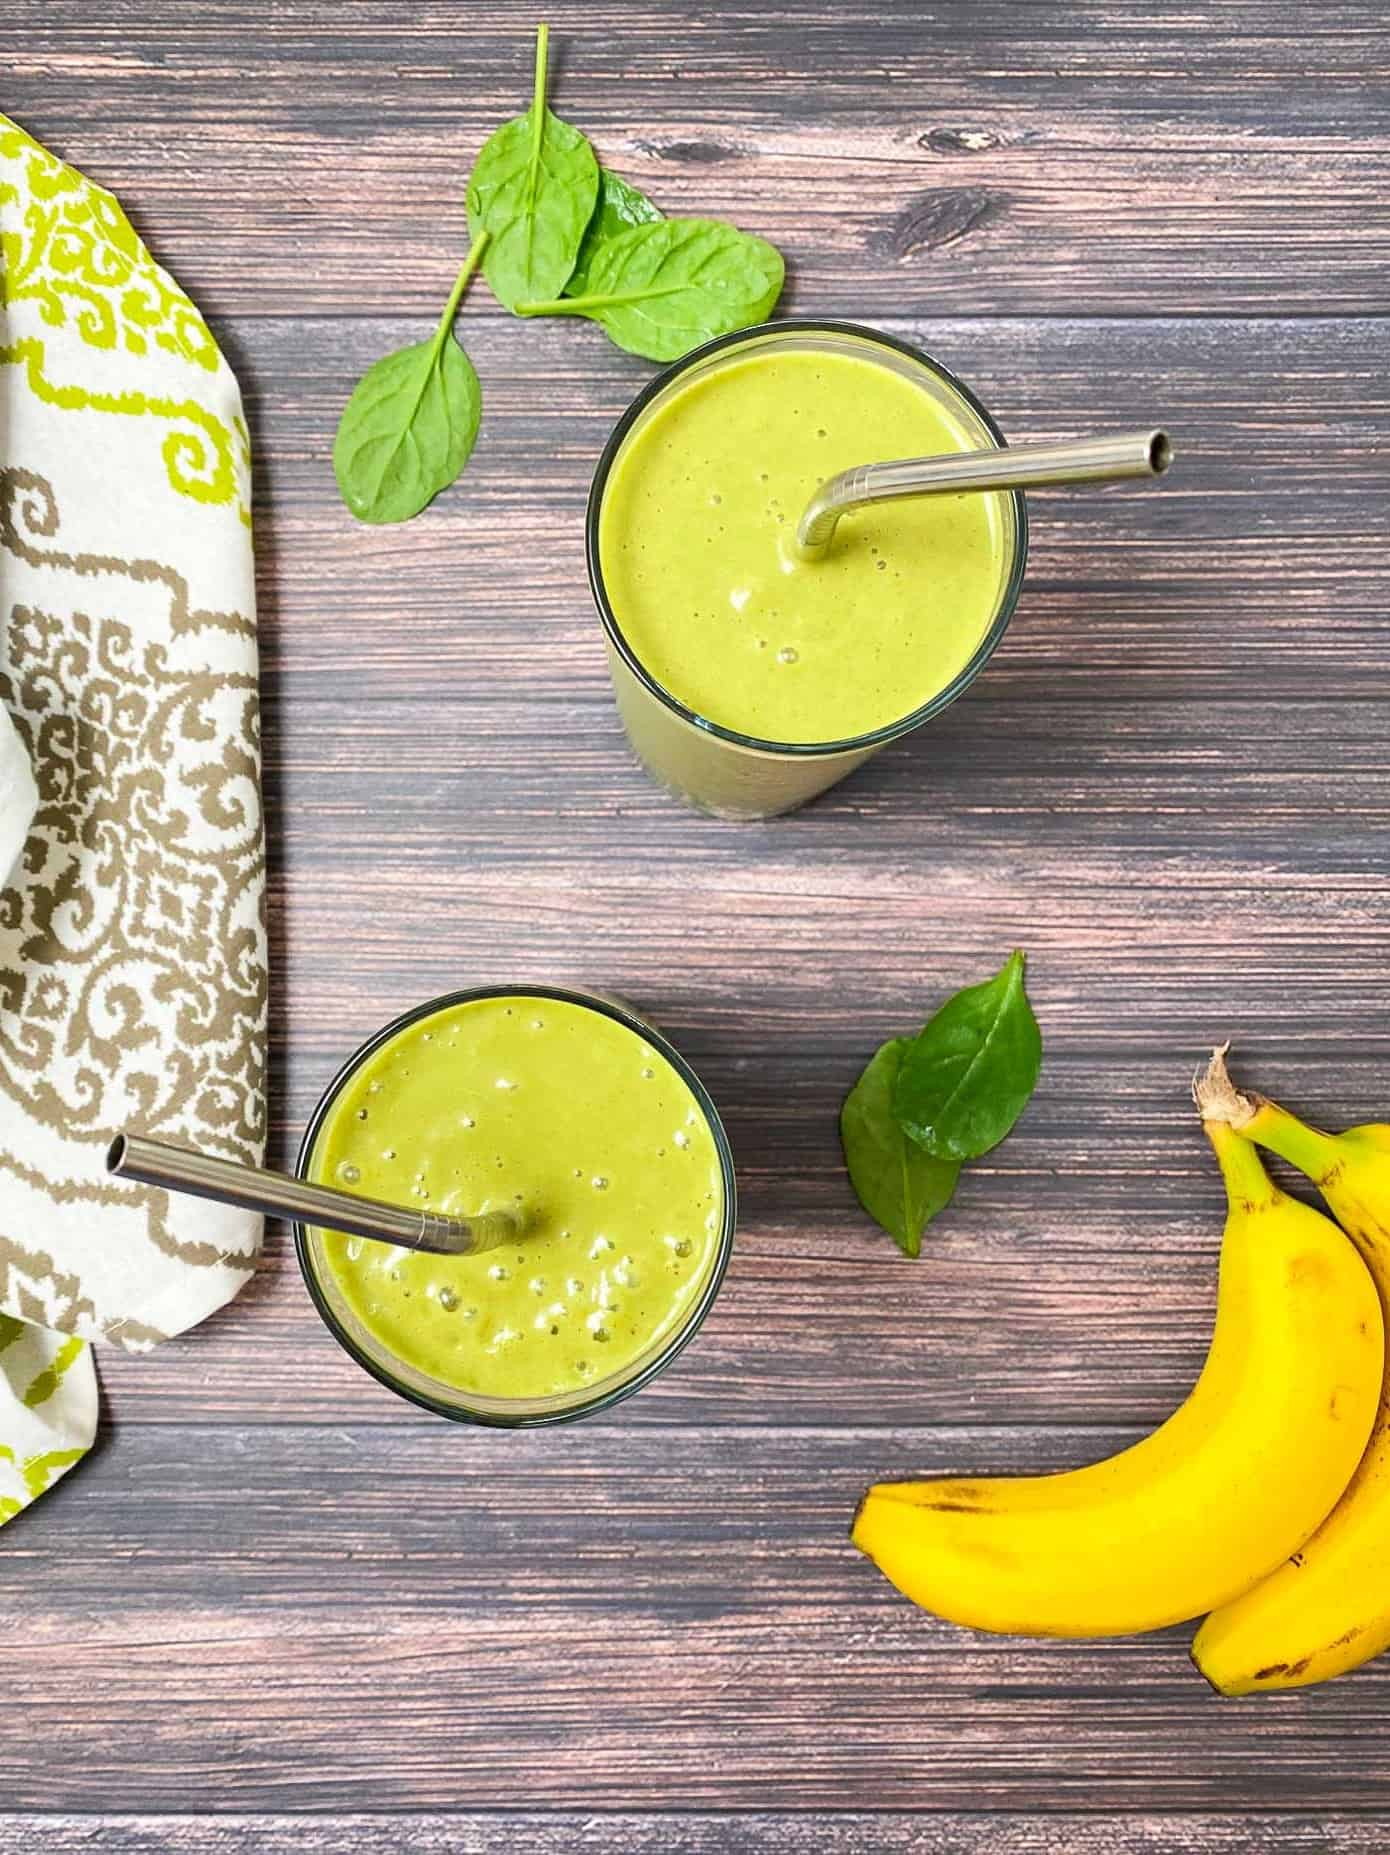 over head view of two glasses of mango spinach smoothies with bananas beside the glases